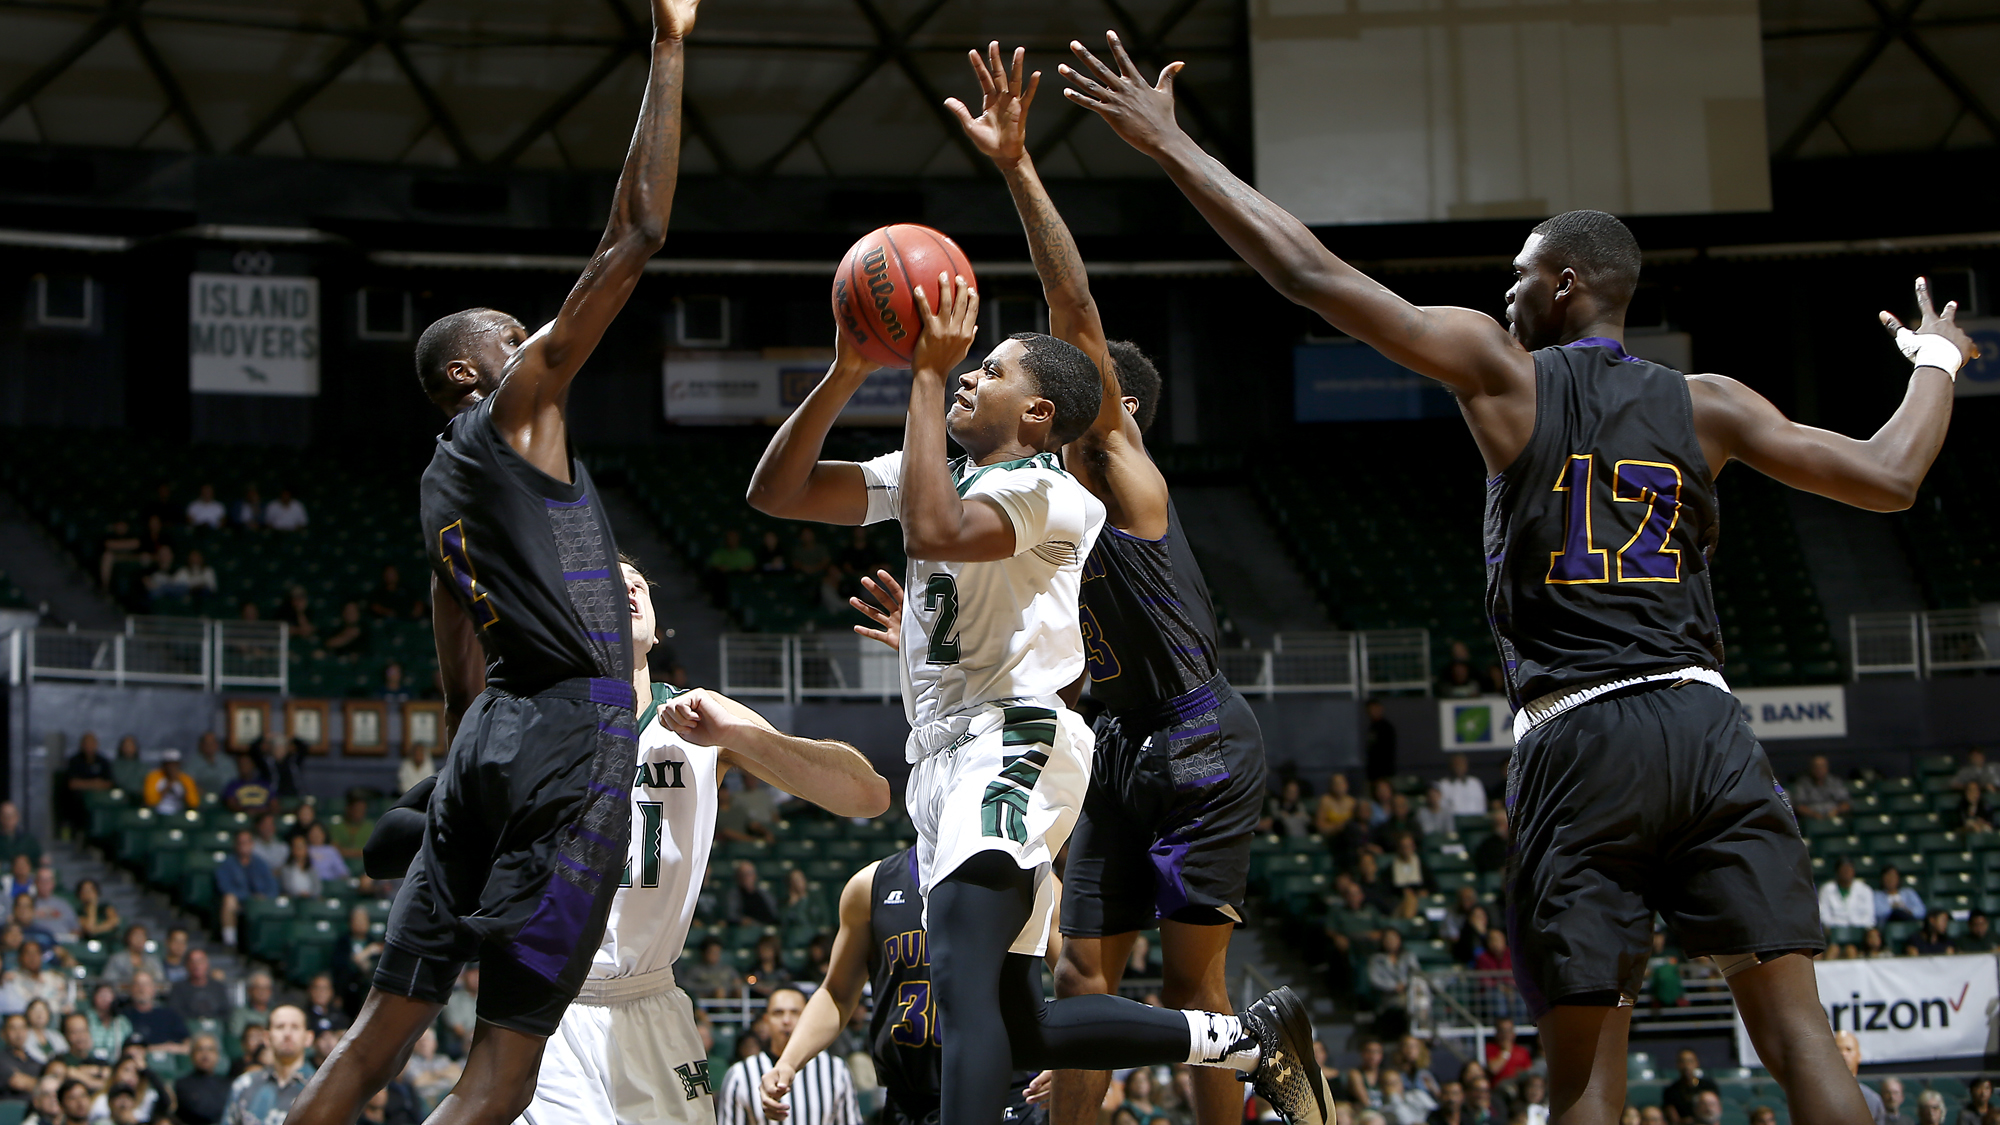 Men's Basketball Seeks Third Straight Win Against UCSB - University